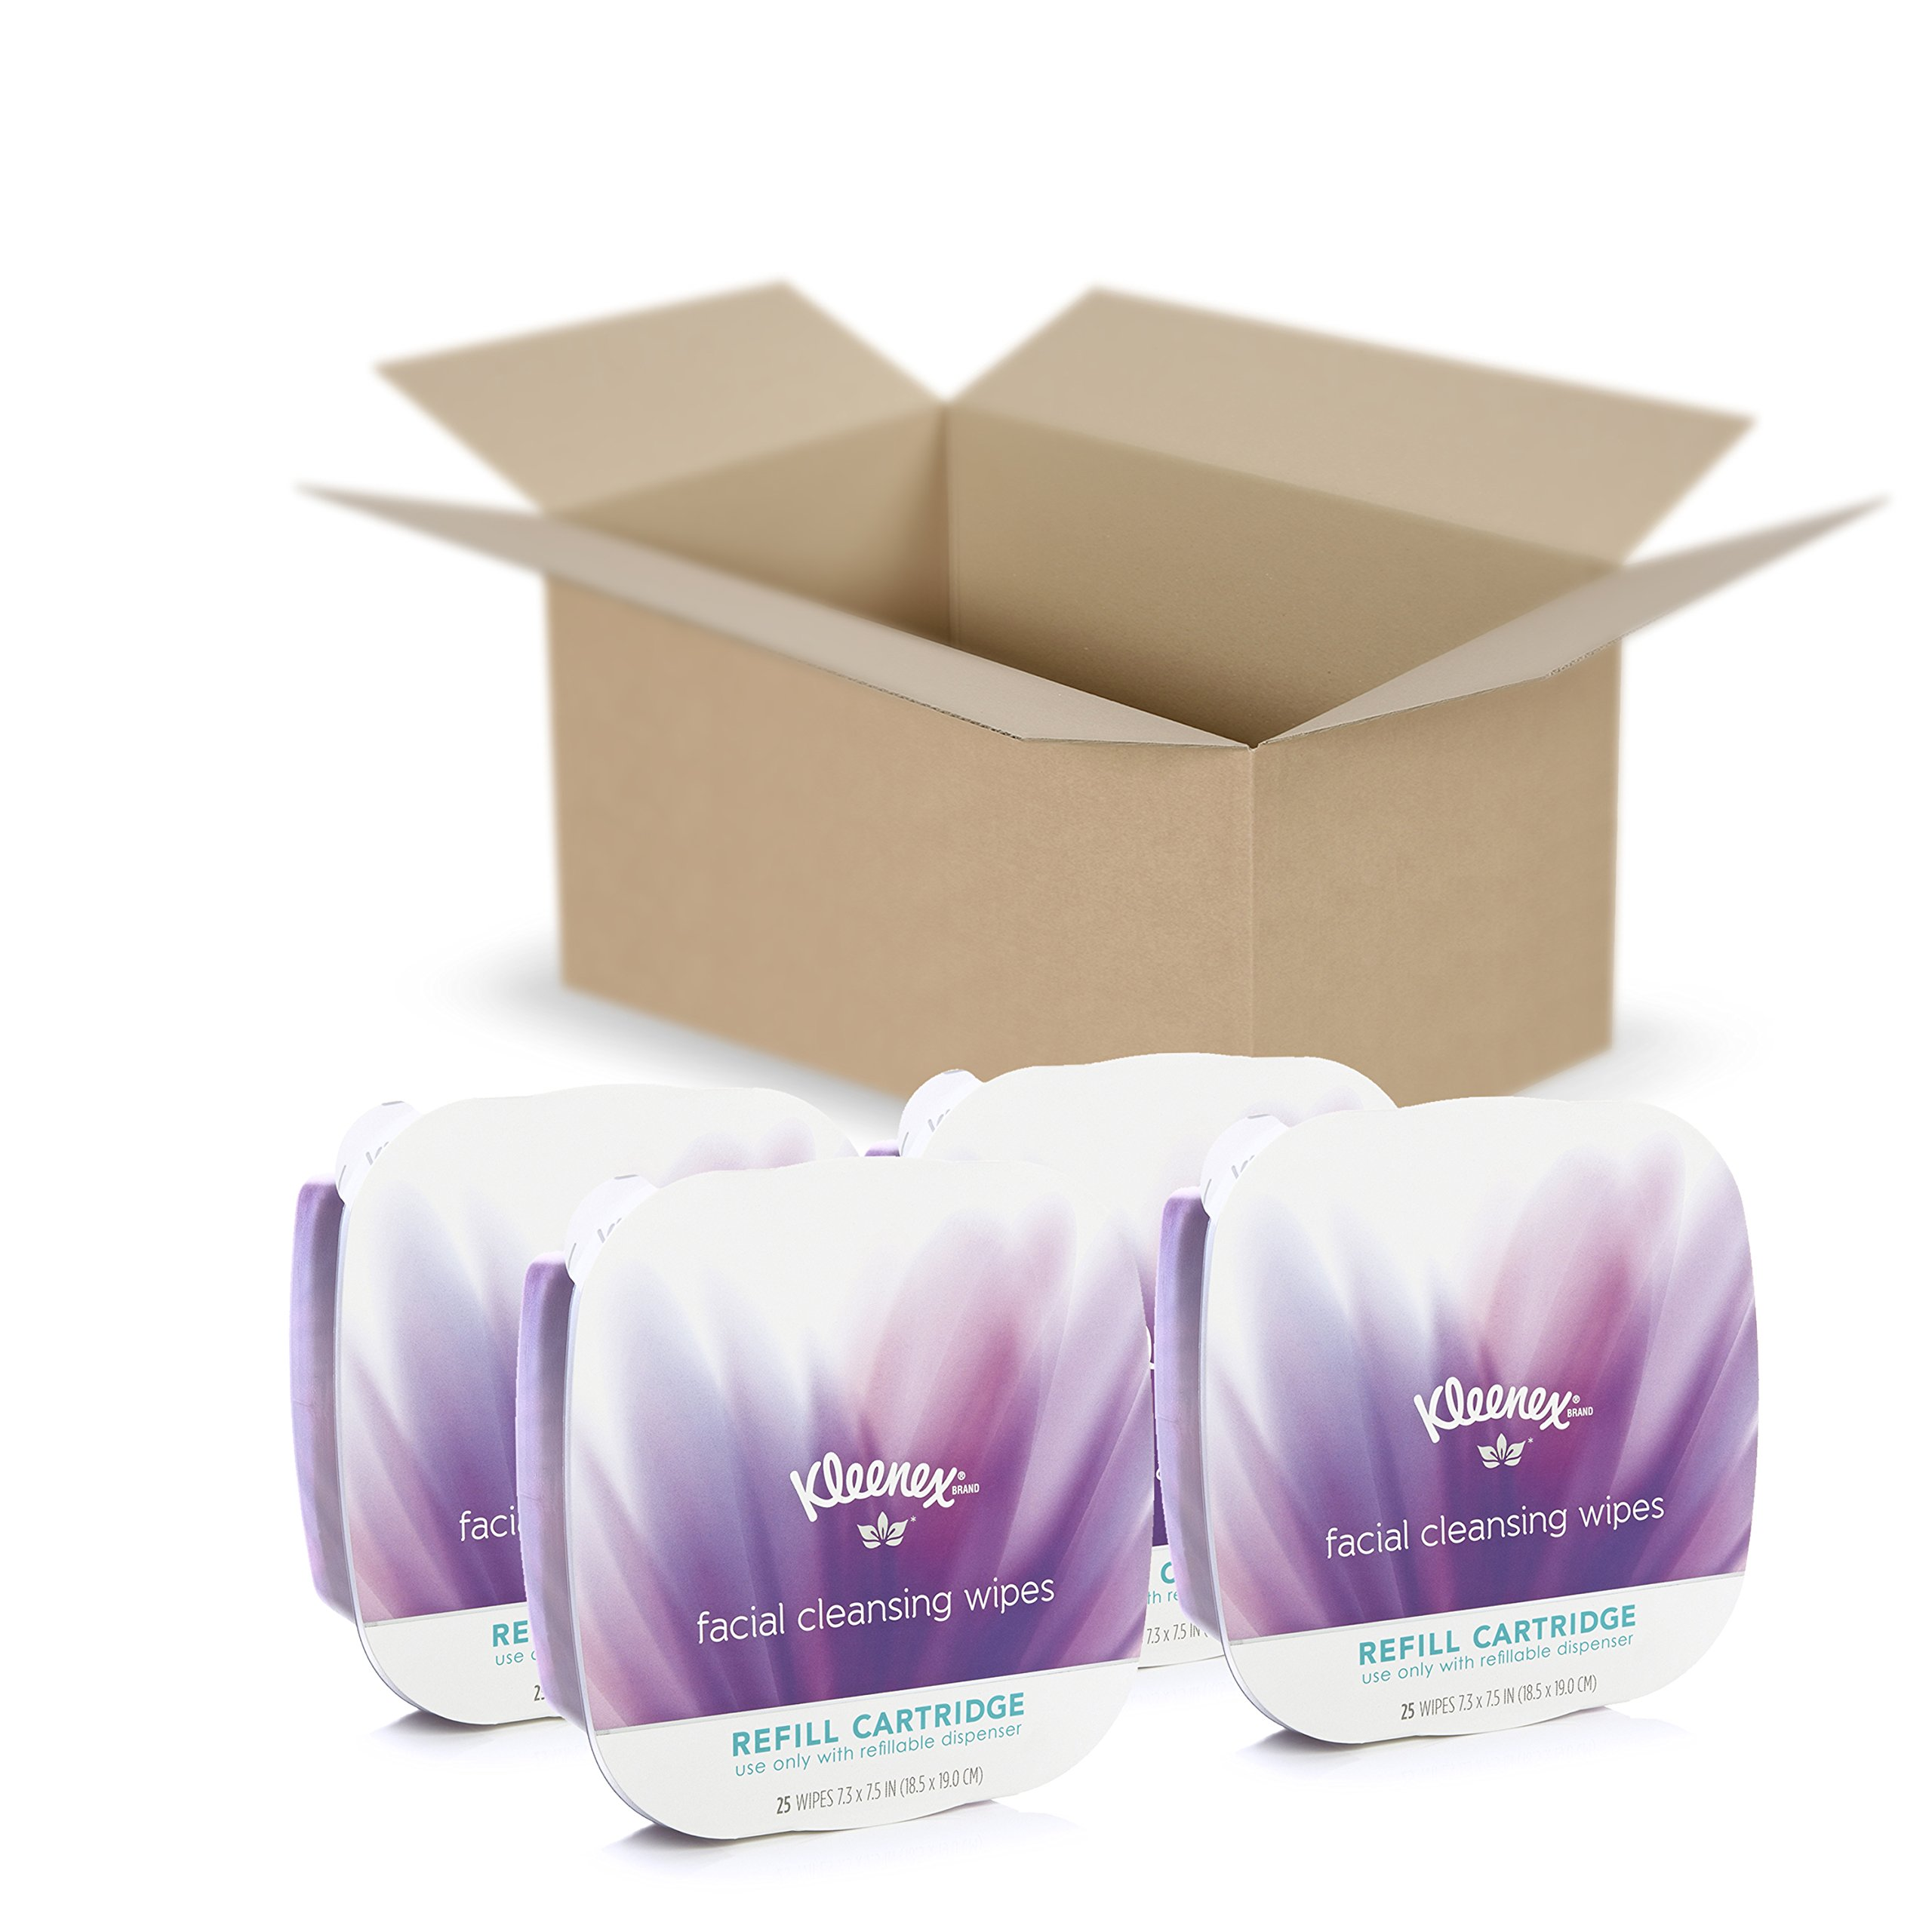 Kleenex Facial Cleansing Wipes Refill Cartridge, 25 Count, Pack of 4